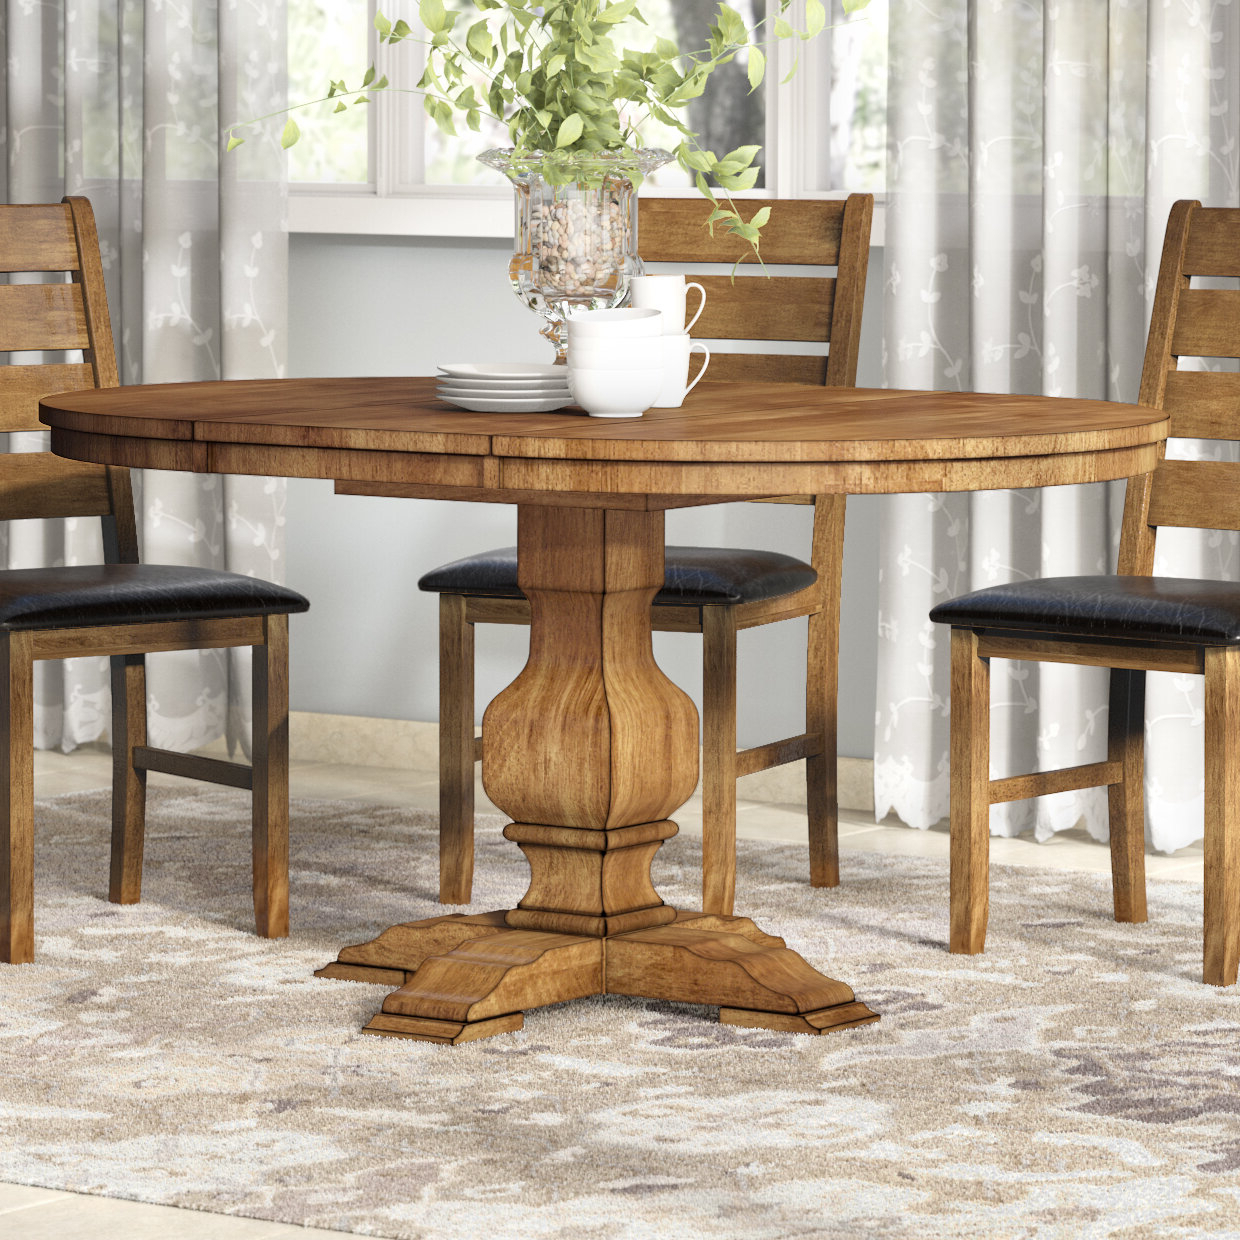 Fortville Extendable Solid Wood Dining Table Intended For 2020 Rustic Brown Lorraine Pedestal Extending Dining Tables (View 25 of 25)